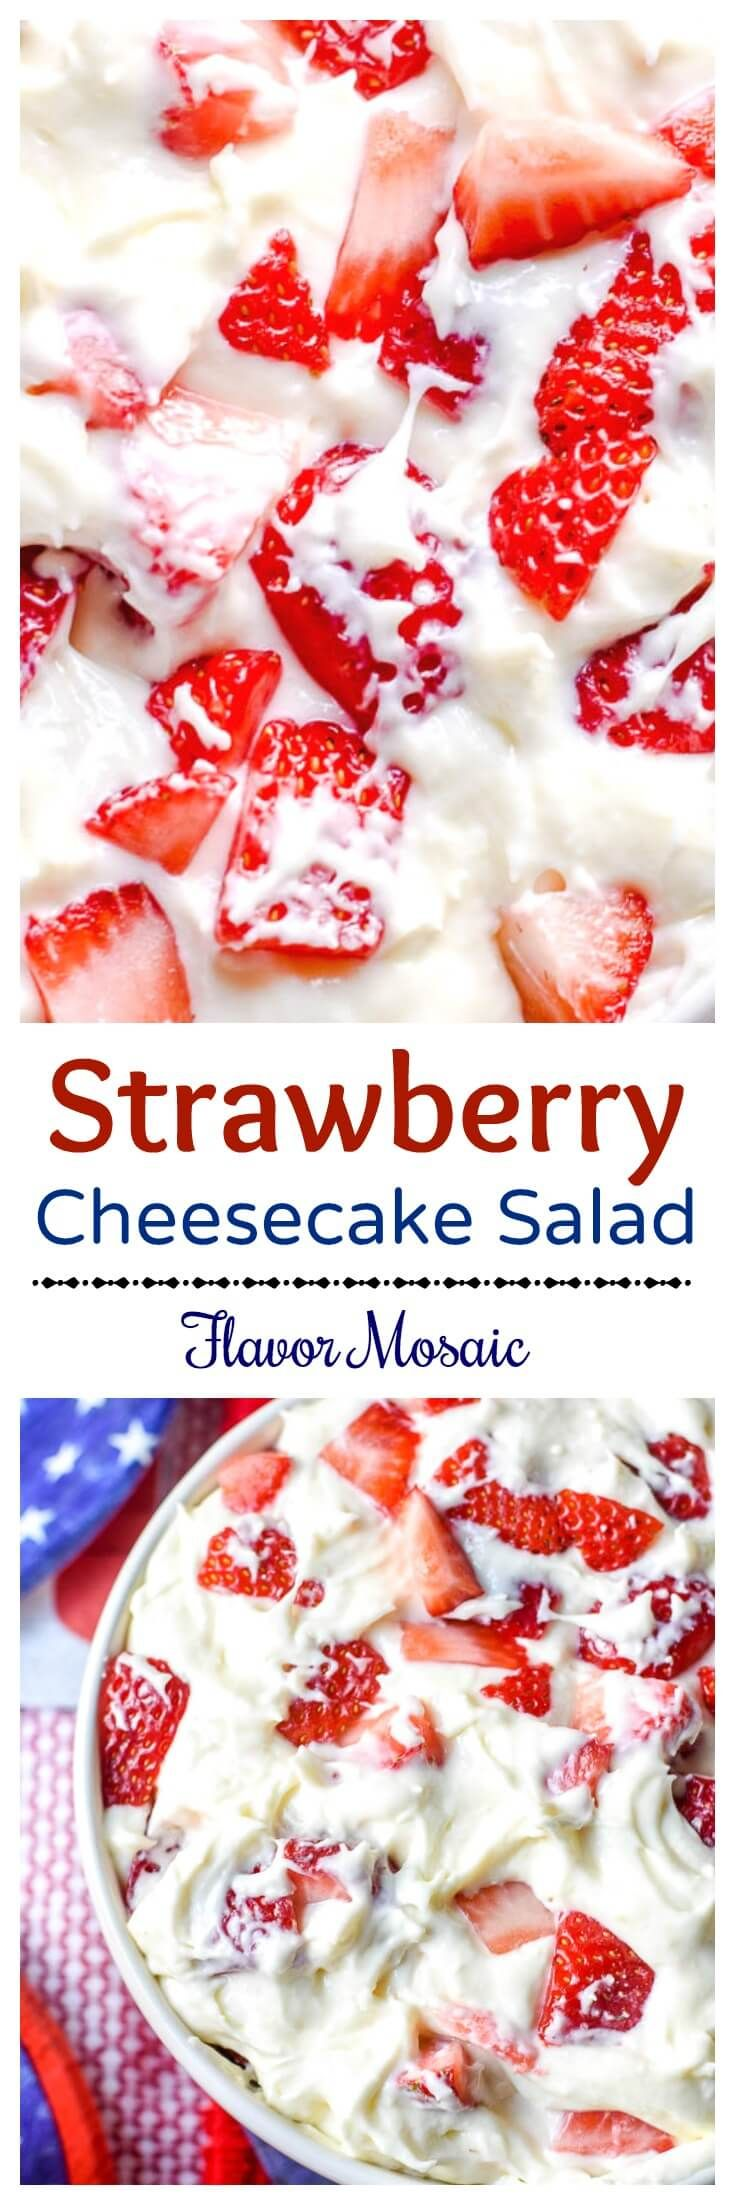 This Strawberry Cheesecake Salad is like a strawberry cheesecake in a bowl and makes a delicious and easy no bake dessert. via @flavormosaic